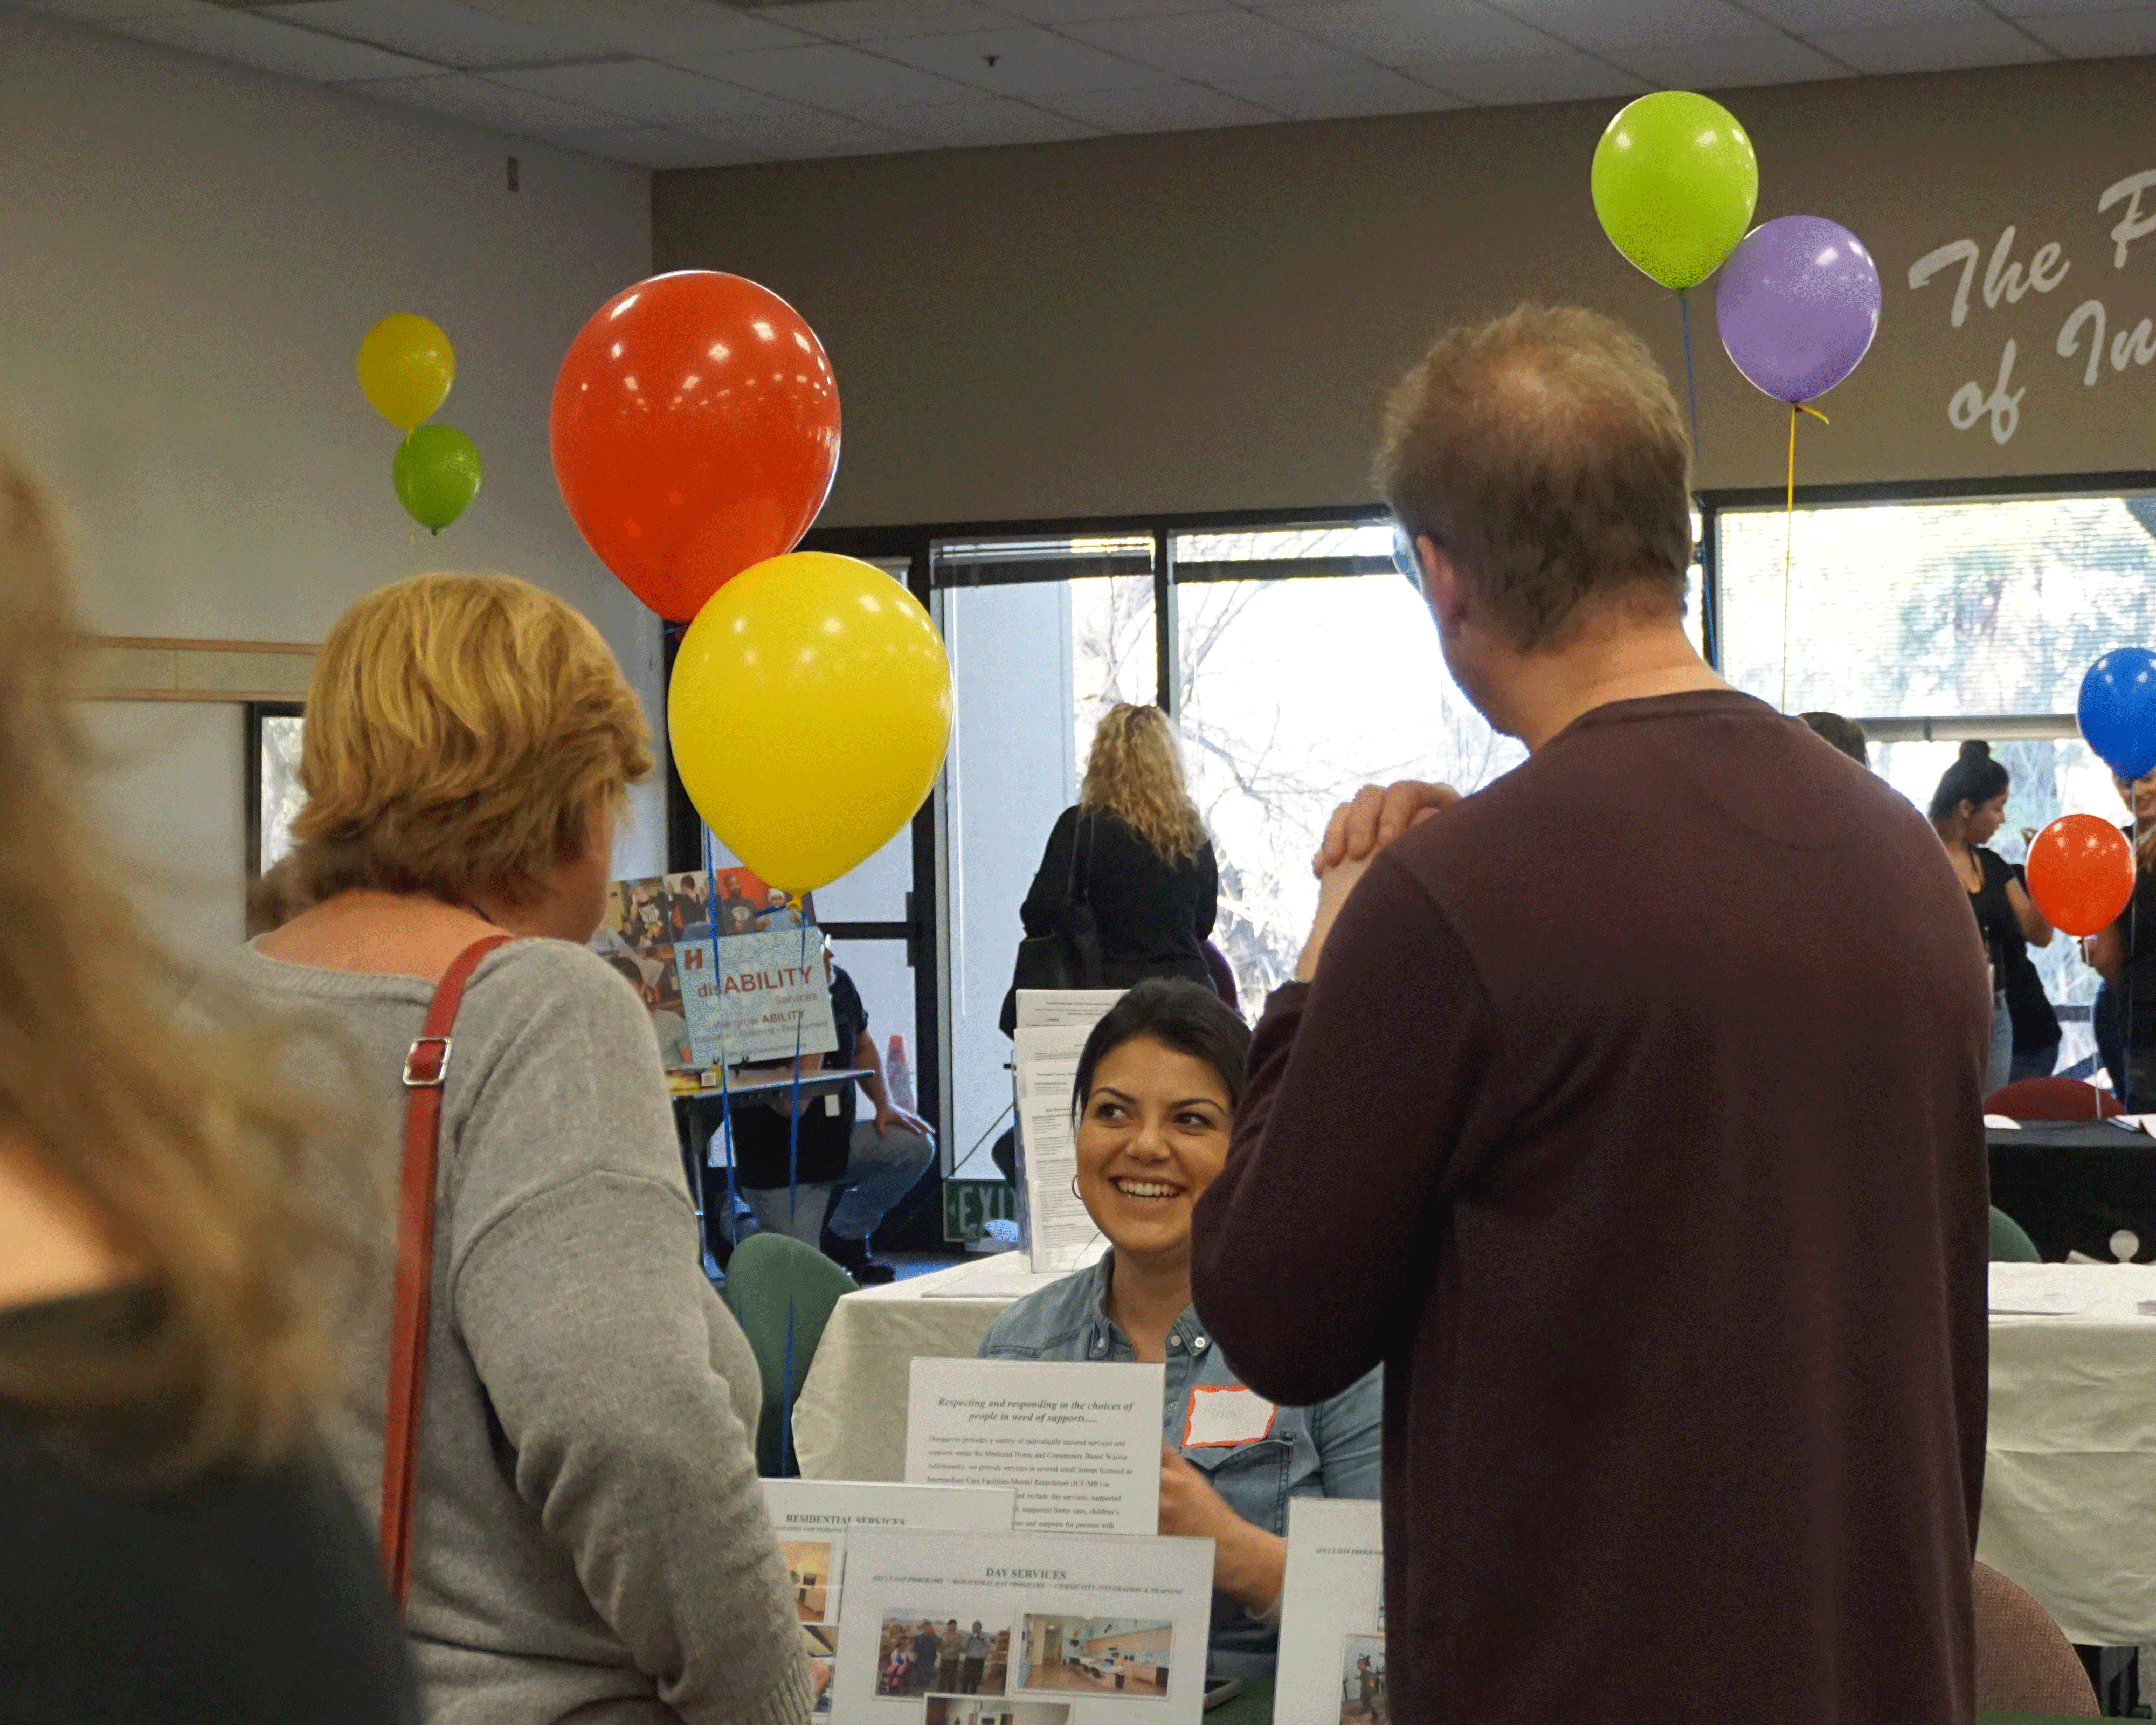 A vendor talks with attendees about services at the Transition Fair